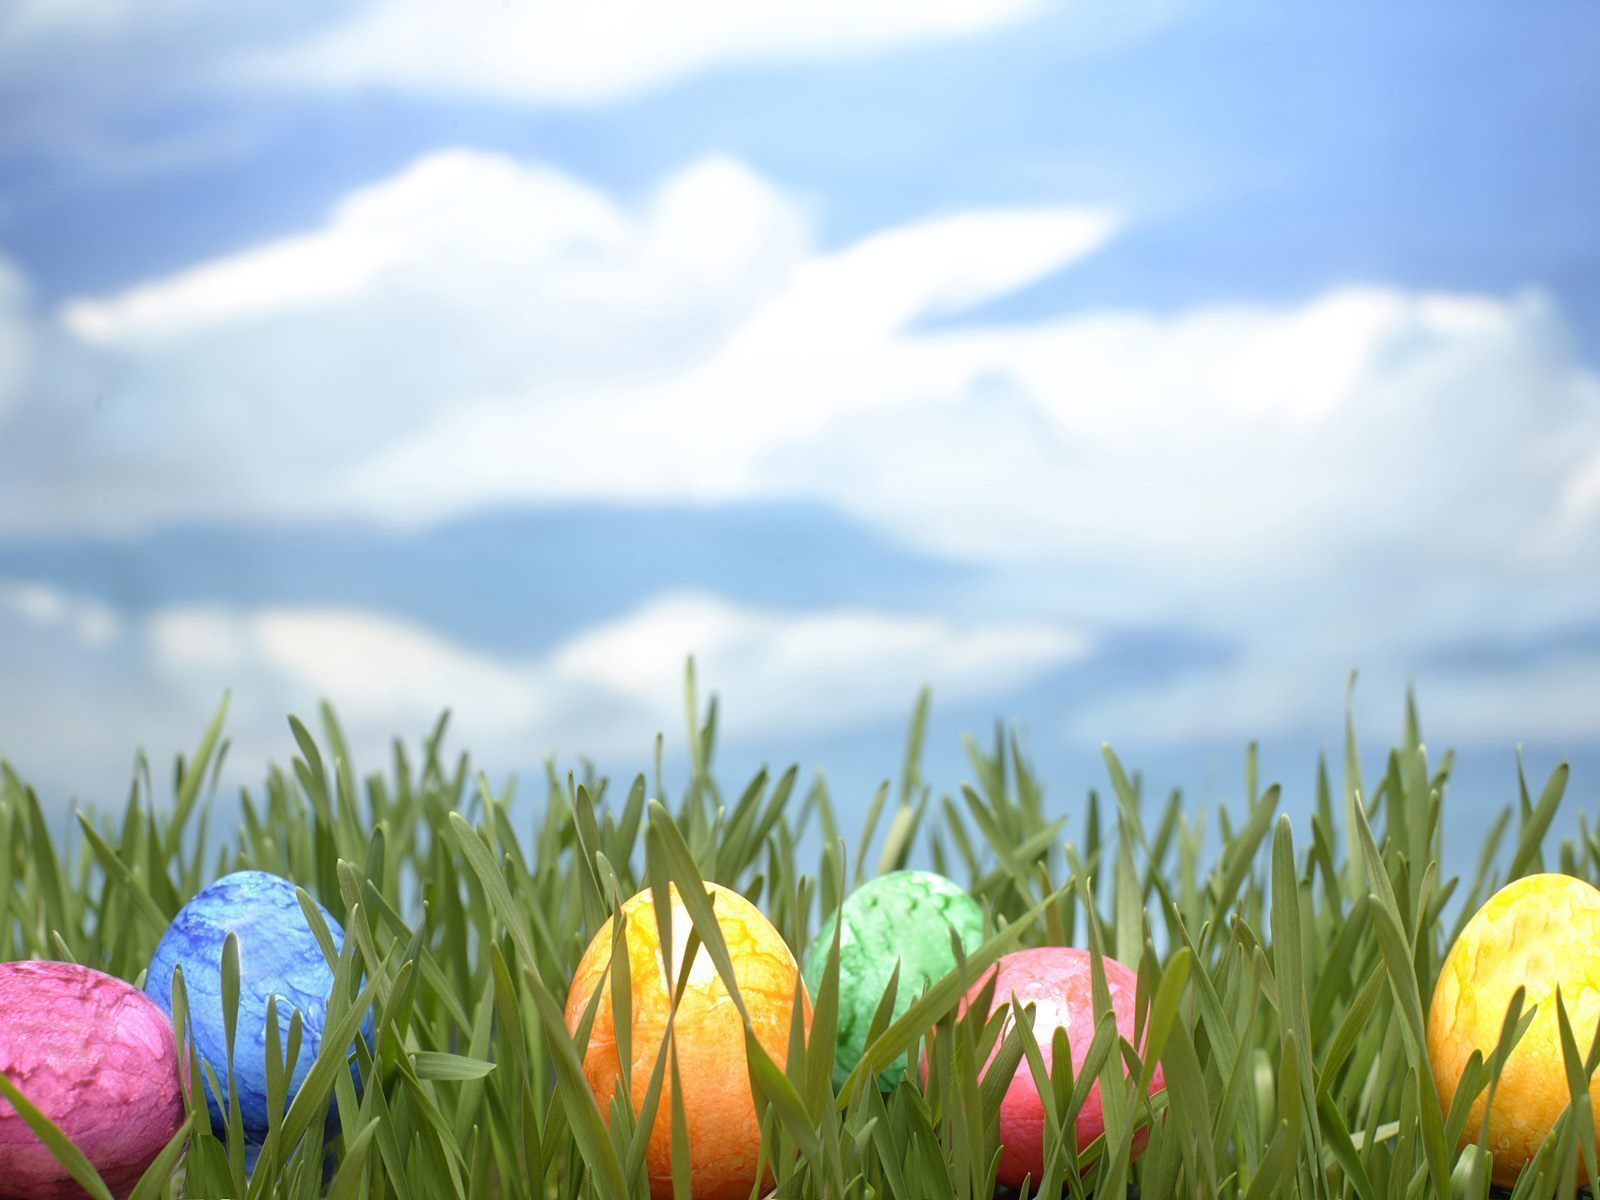 happy easter wallpapers 730a—500 easter wallpaper 43 wallpapers adorable wallpapers